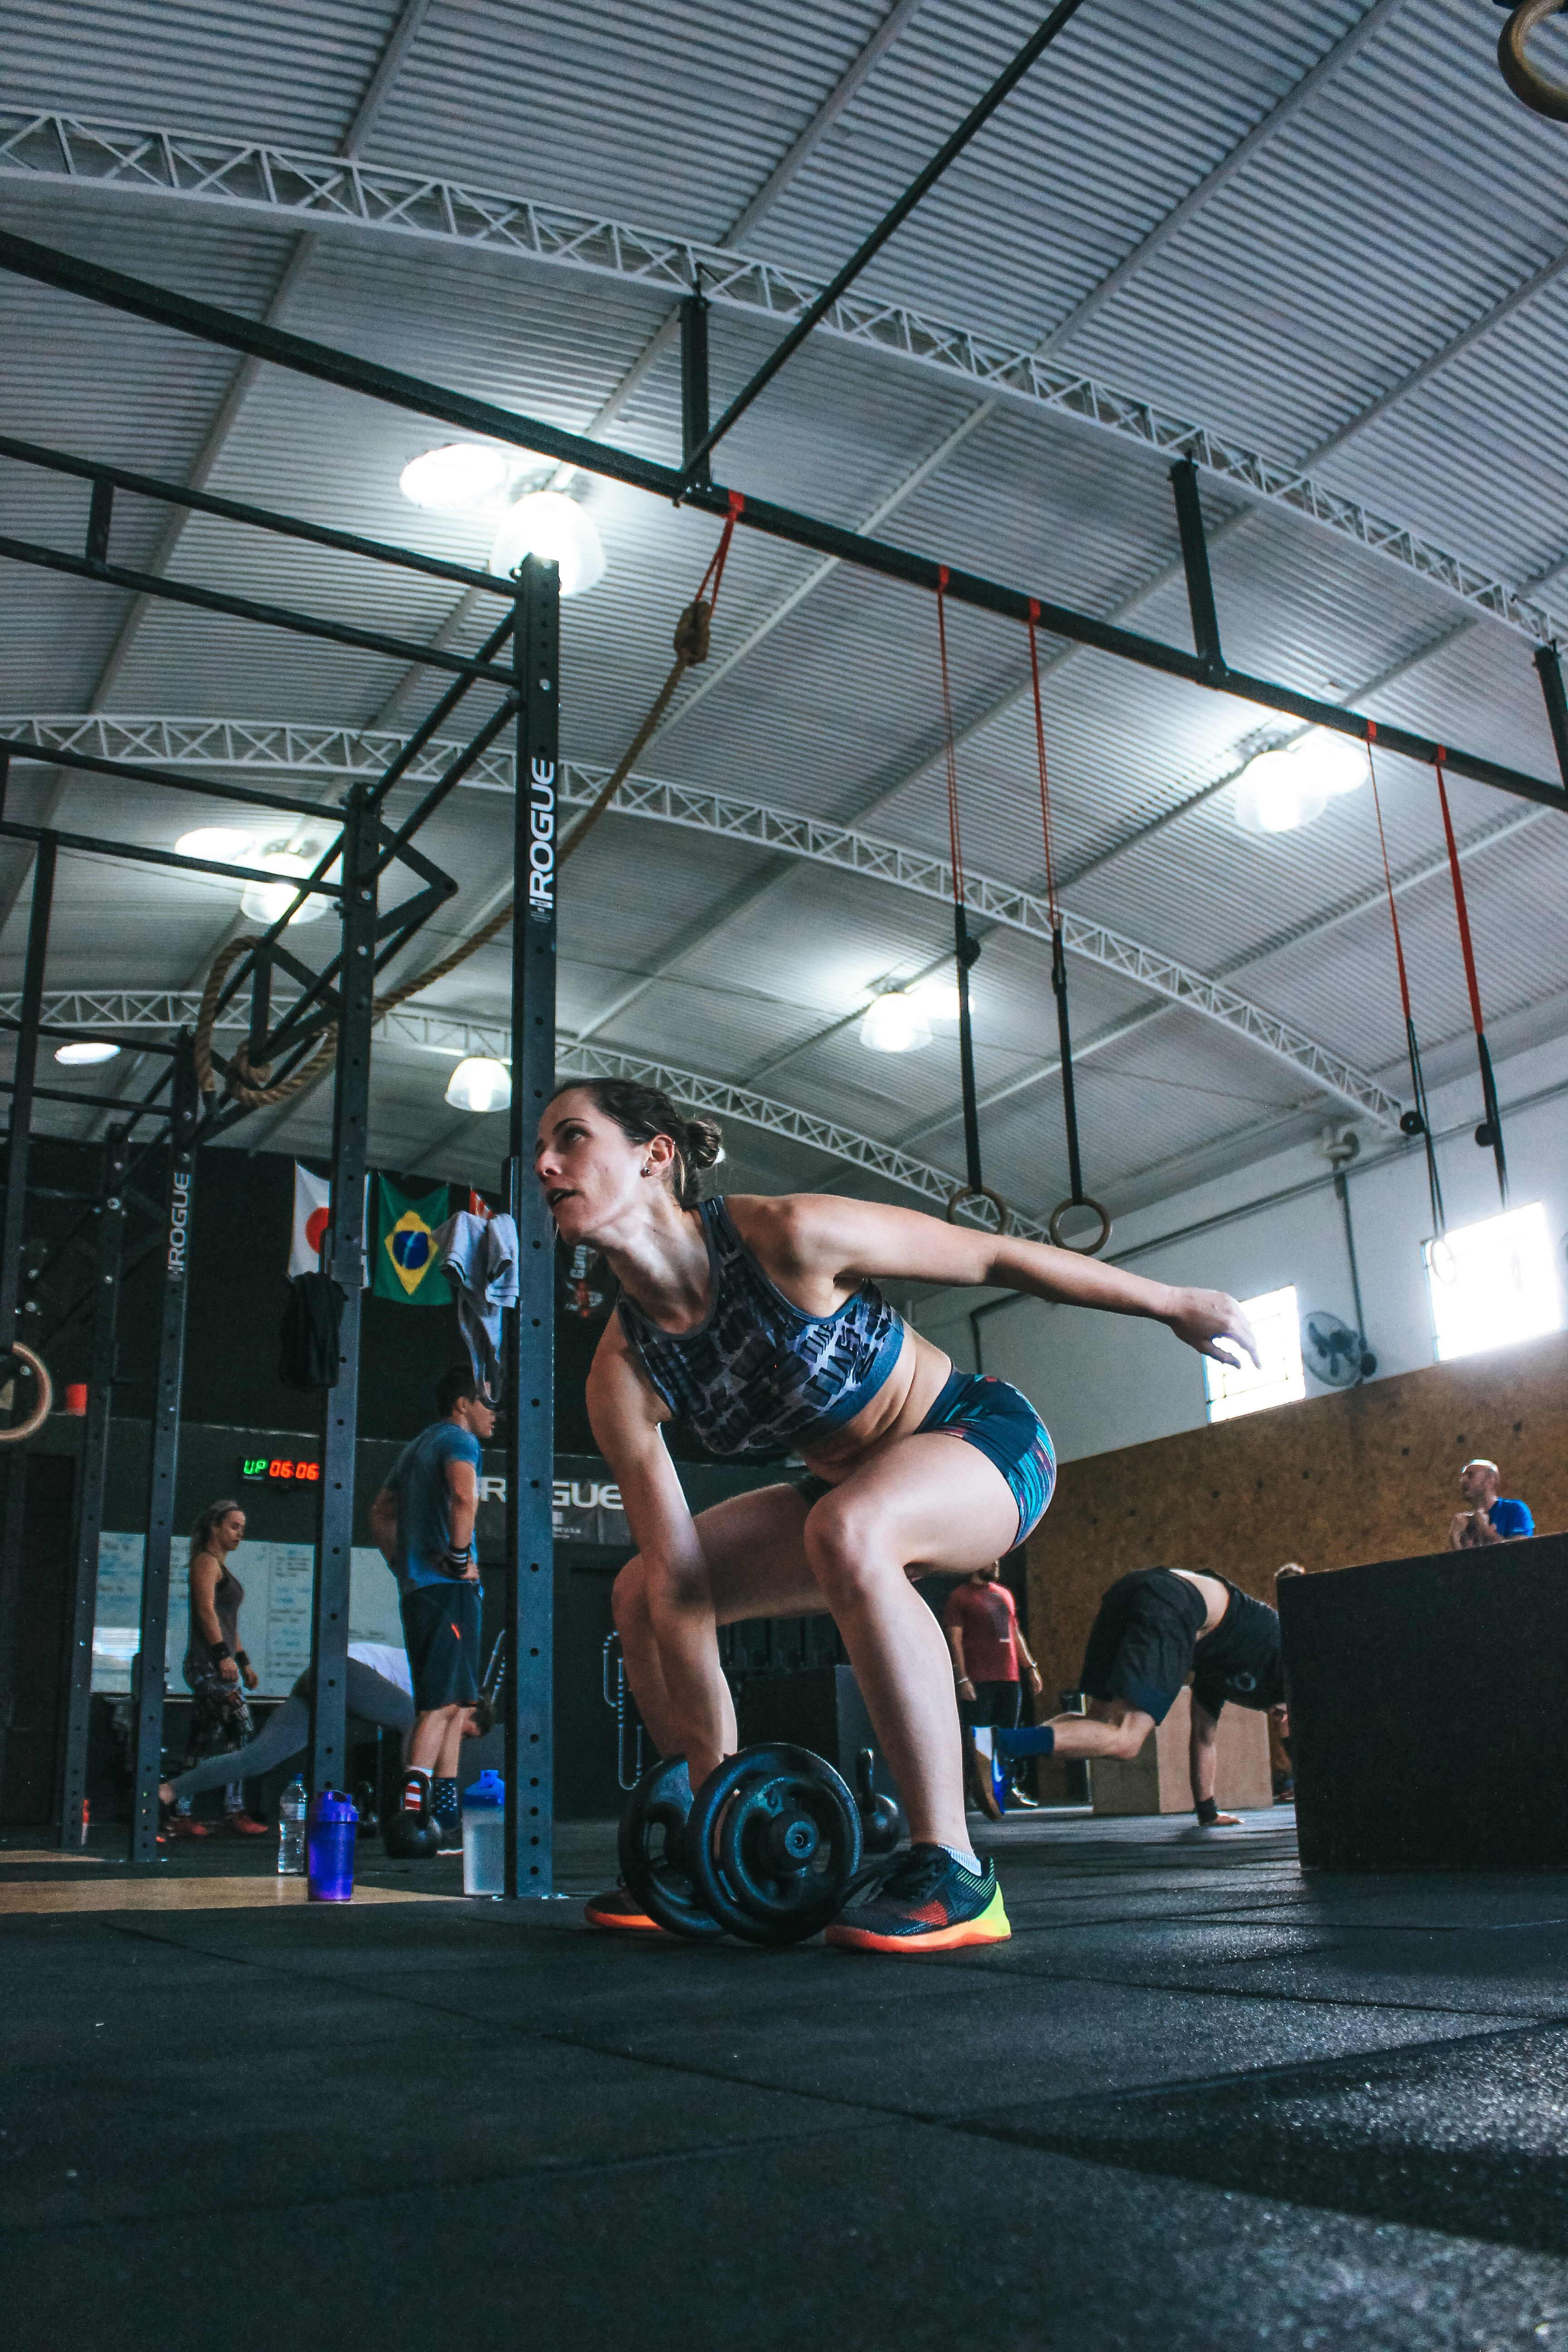 Woman Holding Adjustable Dumbbell With Her Right Hand at Gym, Balance, People, Wear, Urban, HQ Photo